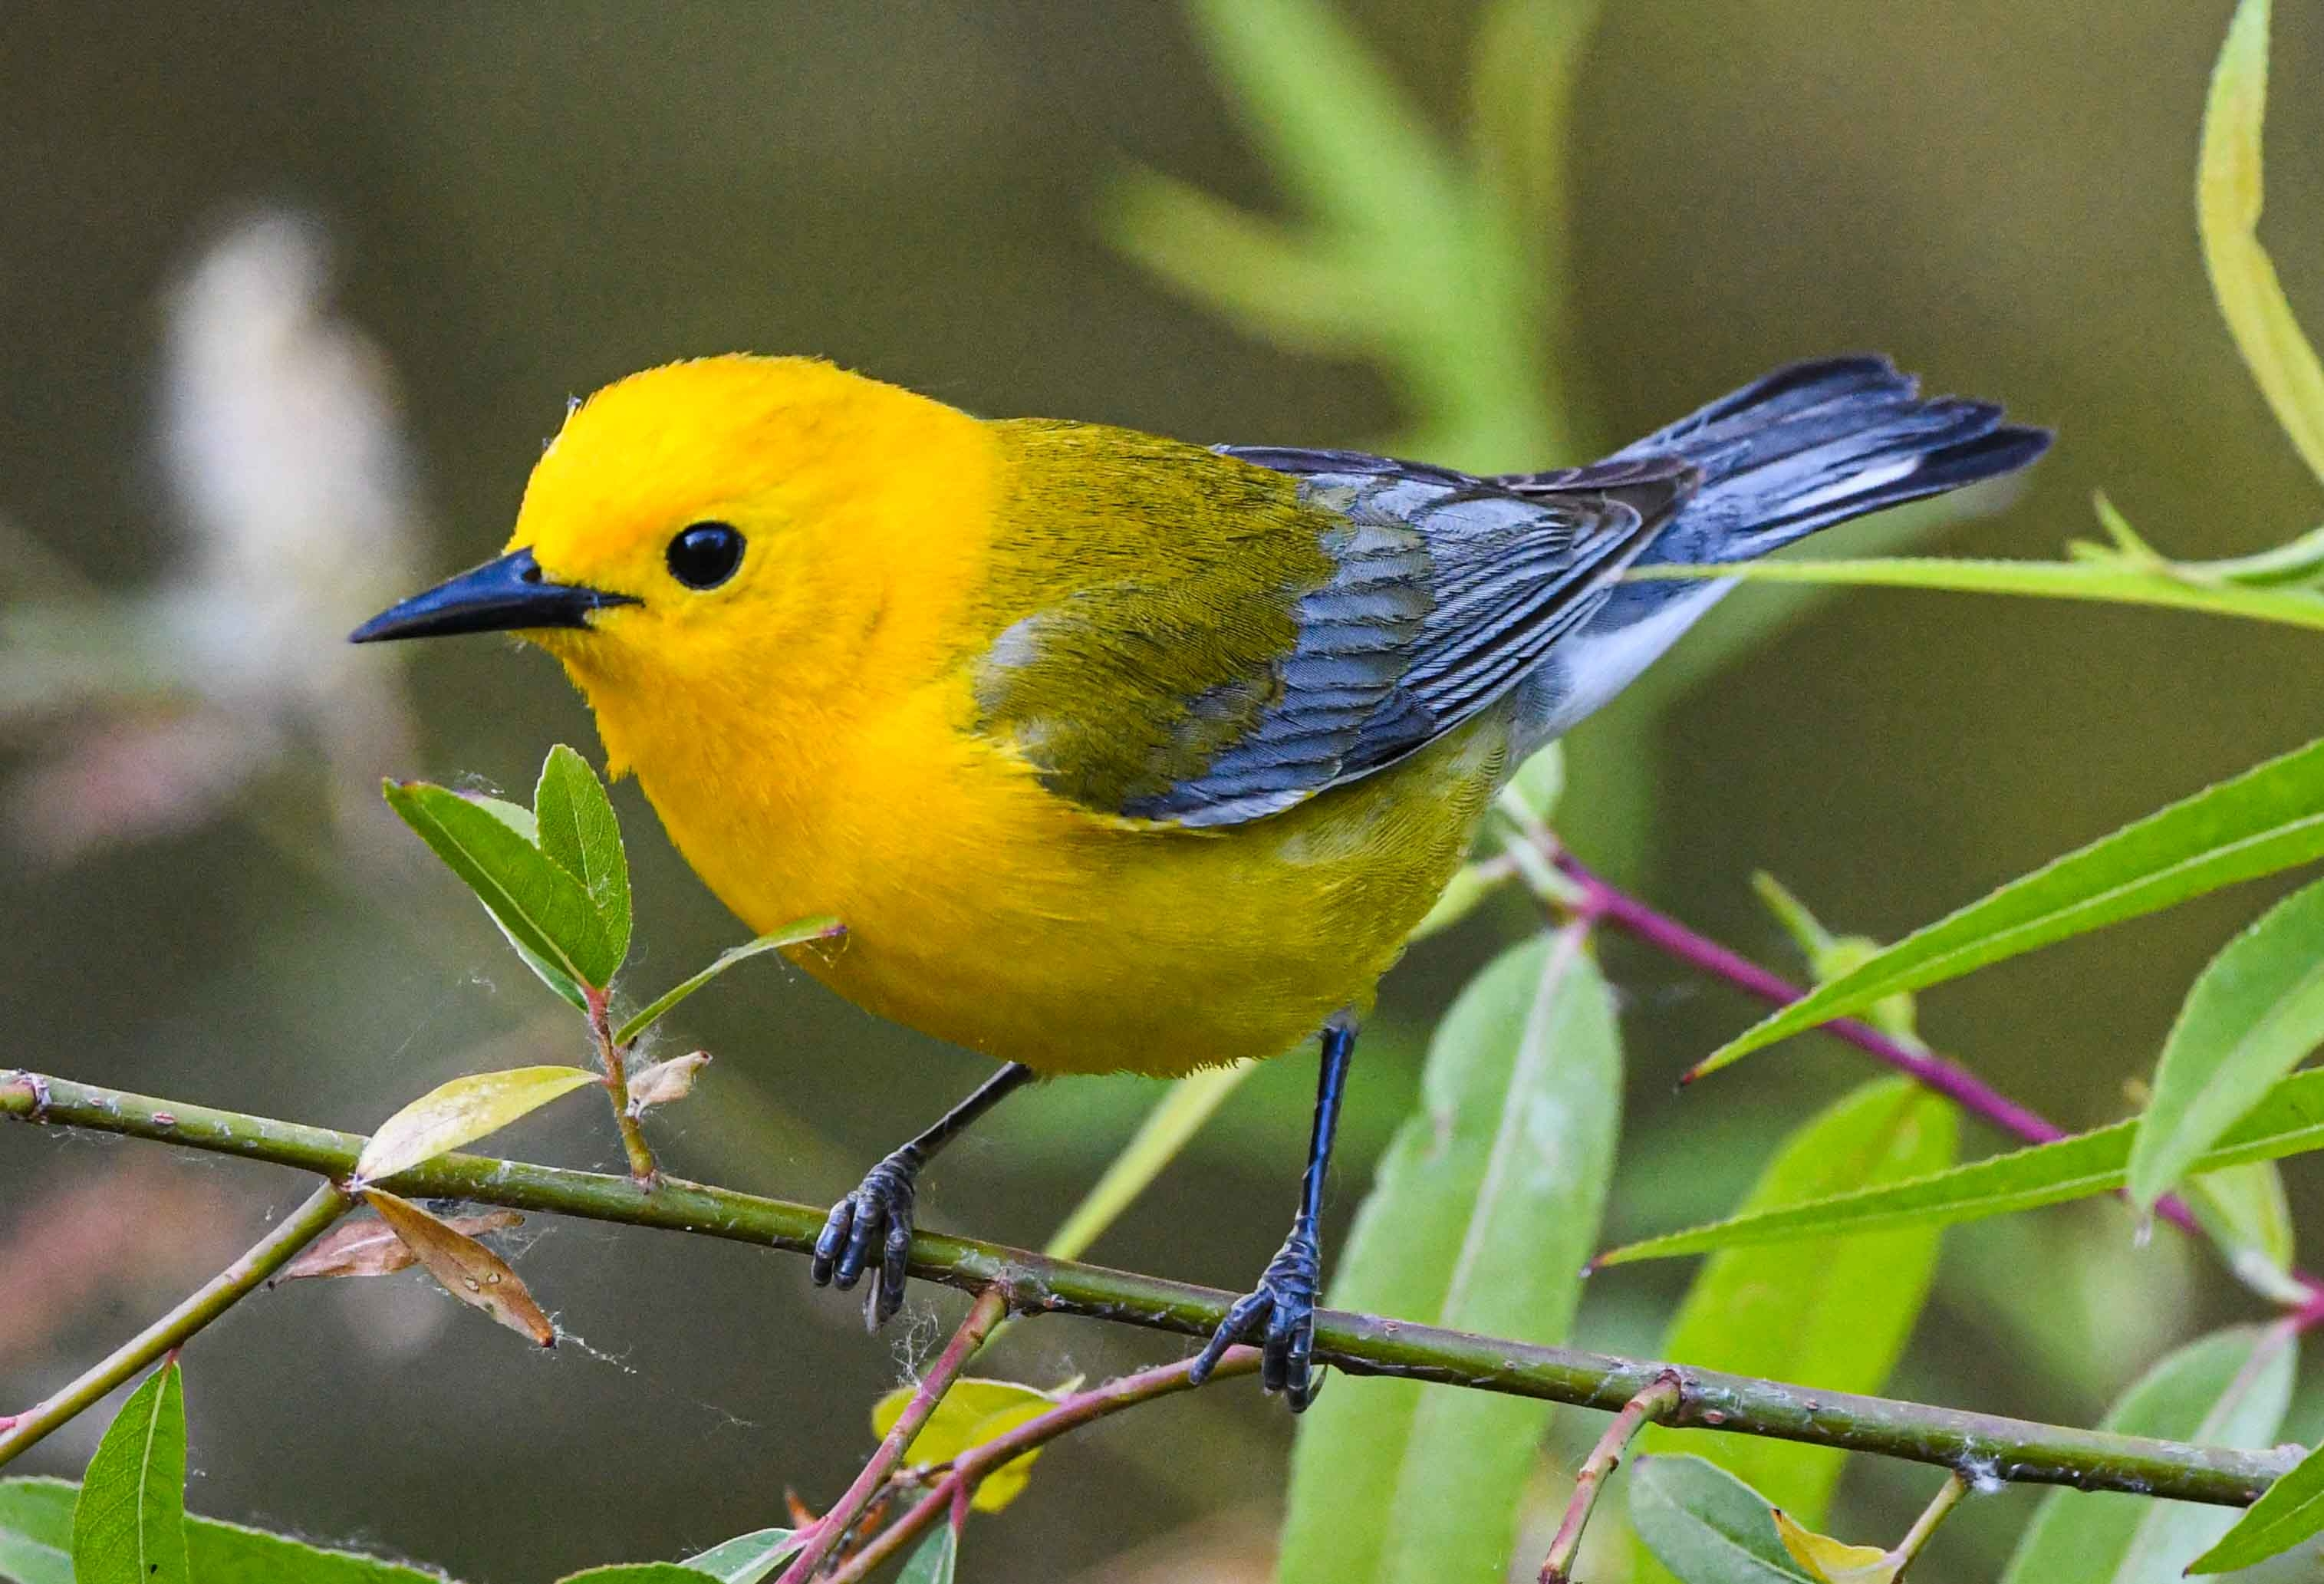 Prothonotary Warbler: the golden bird of springtime